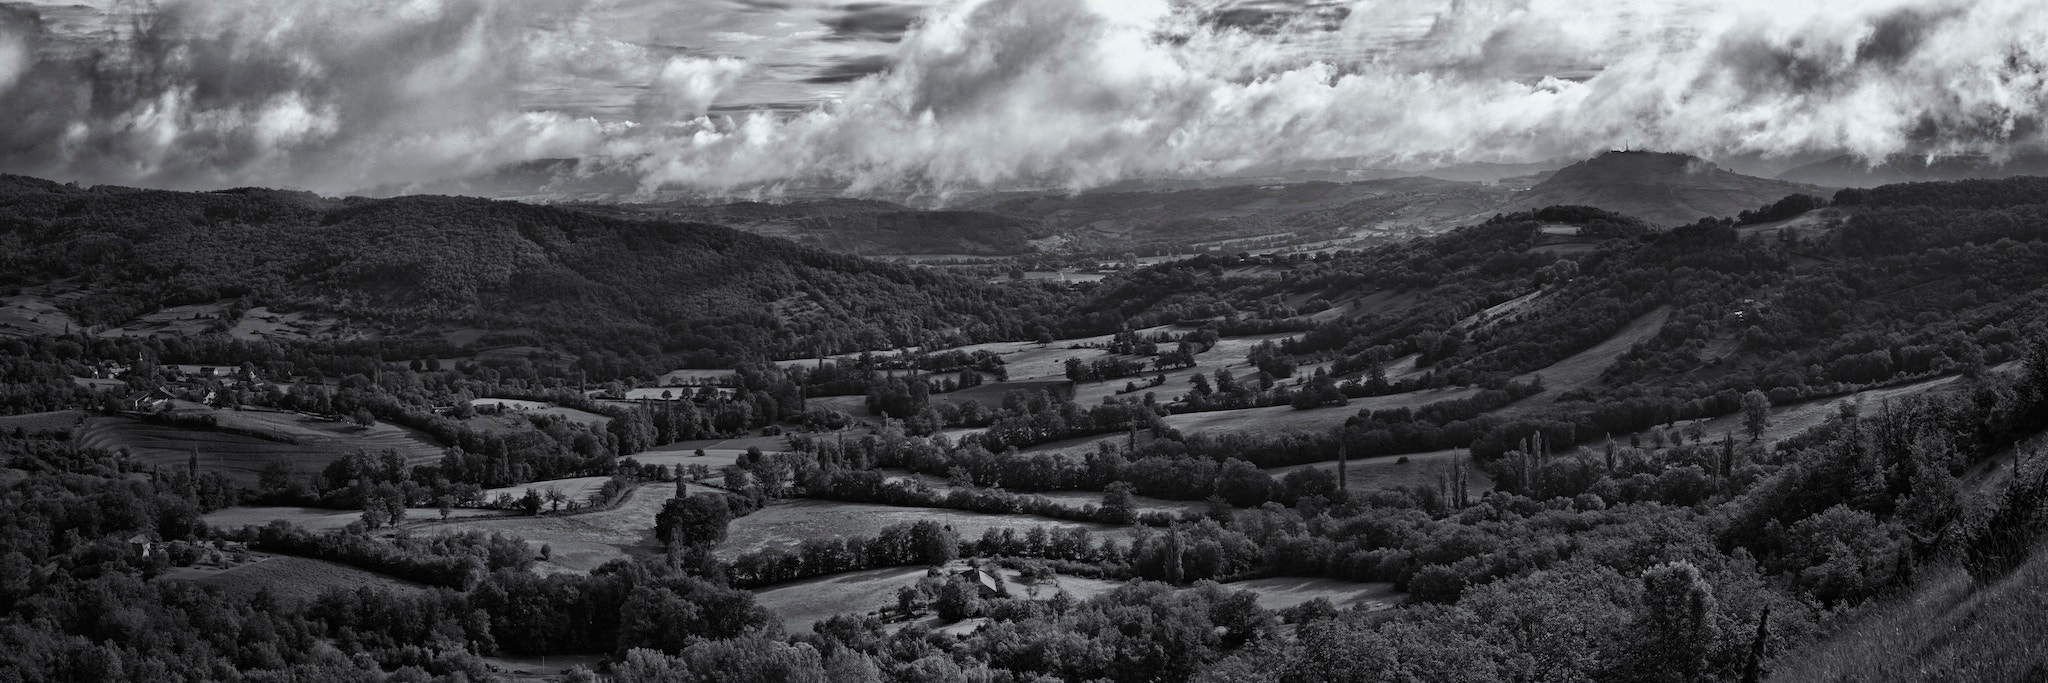 Photograph Vallon by Guillaume_Tort on 500px